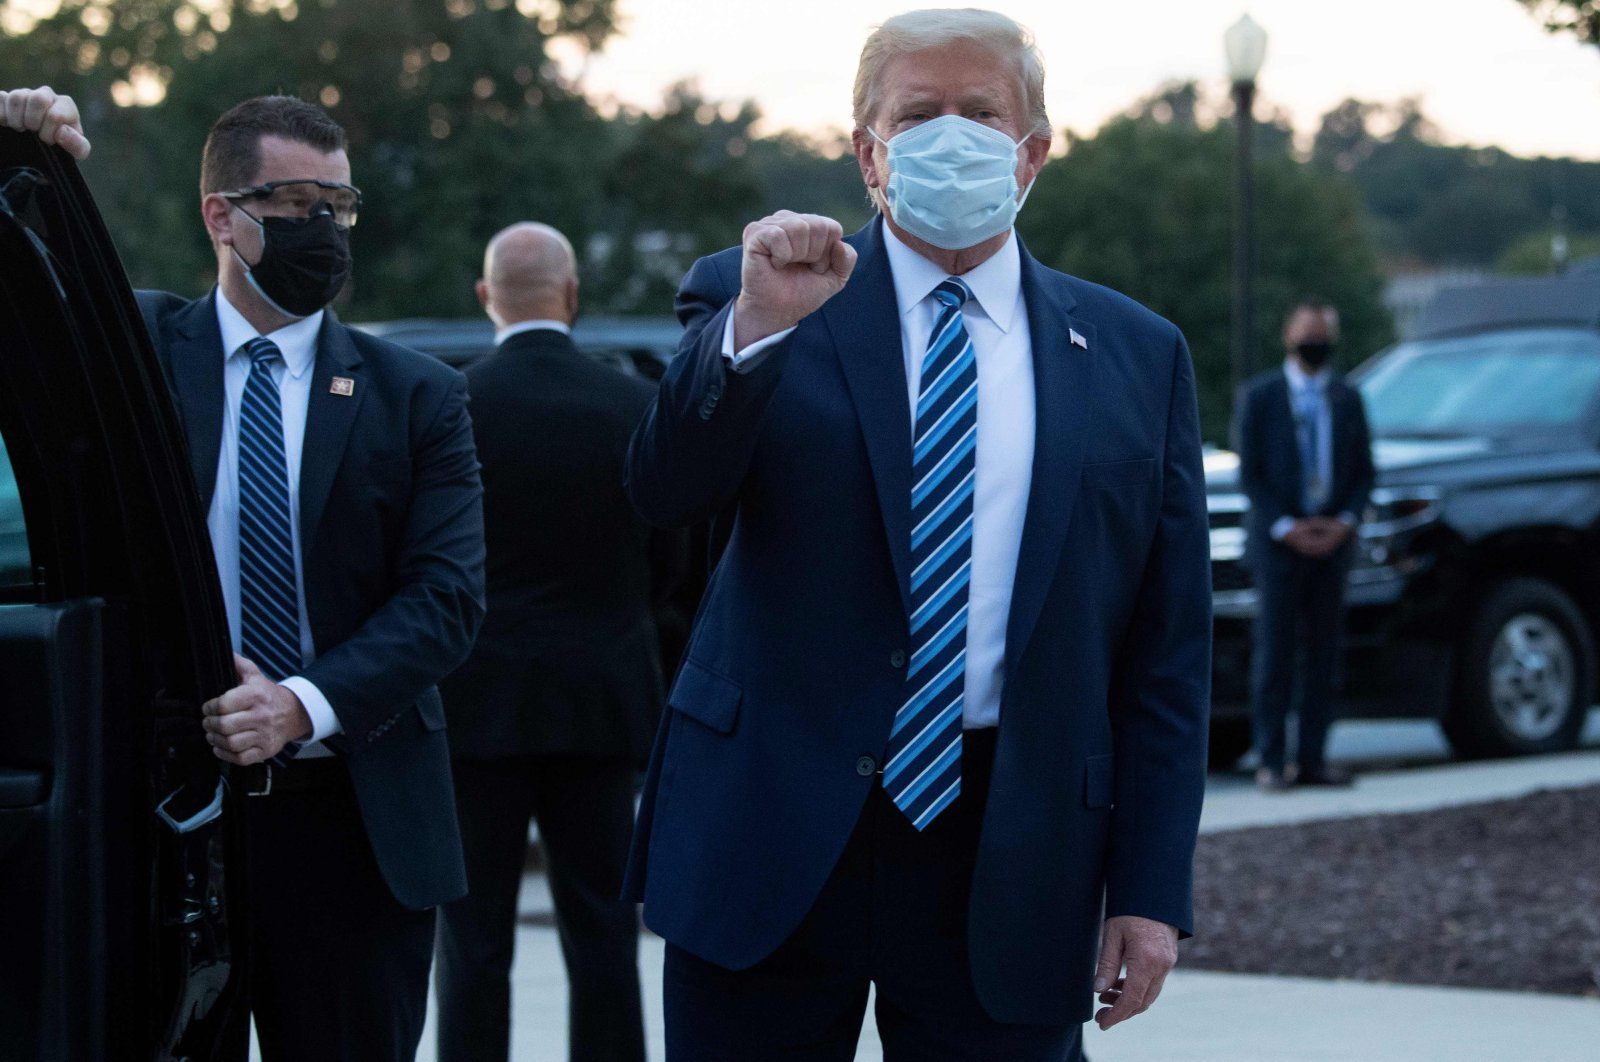 U.S. President Donald Trump pumps his fist as he leaves Walter Reed National Military Medical Center in Bethesda, Maryland, U.S., heading toward Marine One, to return to the White House after being discharged following treatment for COVID-19, Oct. 5, 2020. (AFP Photo)